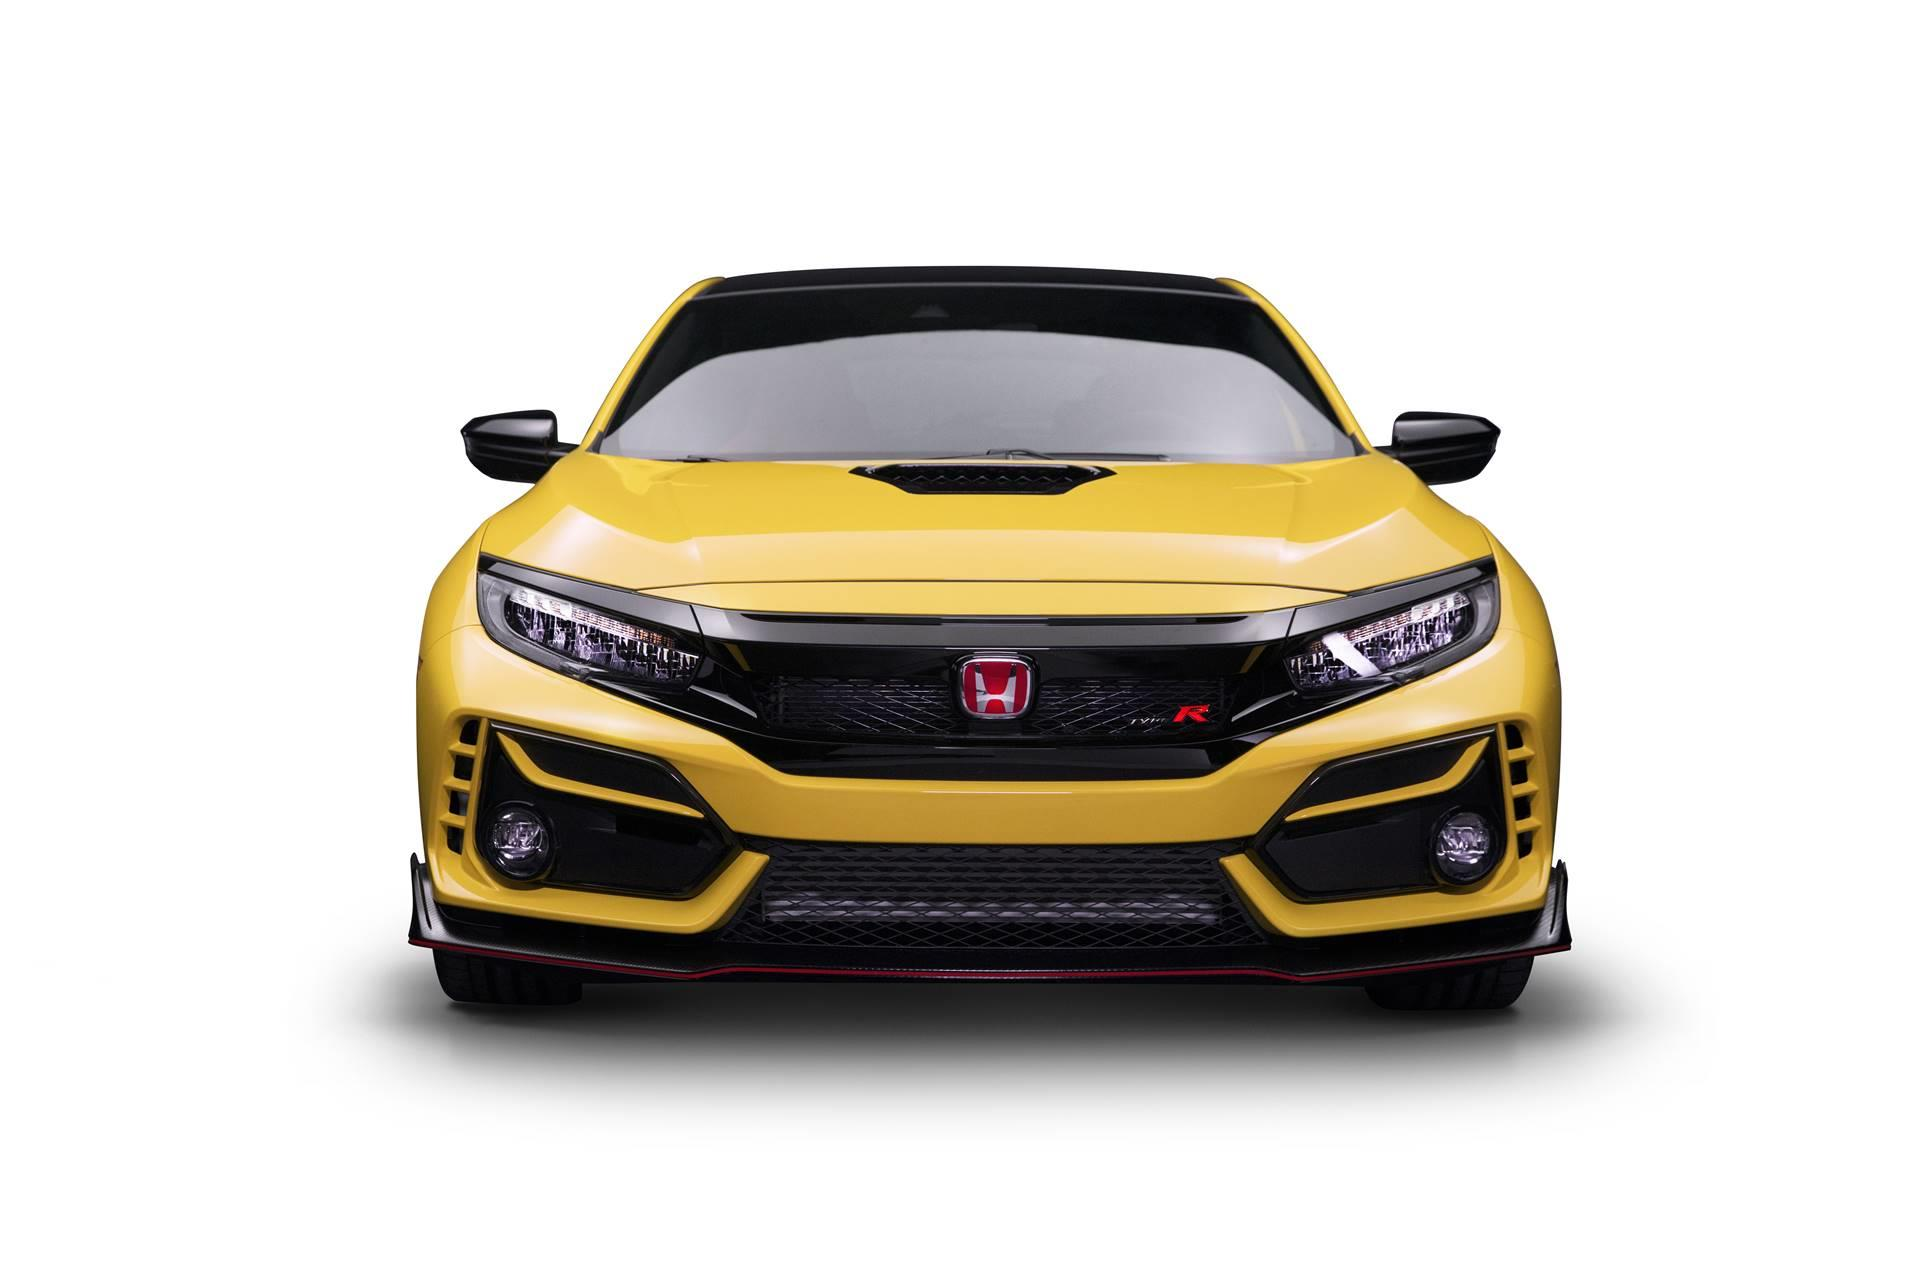 2020 Honda Civic Type R Limited Edition News And Information